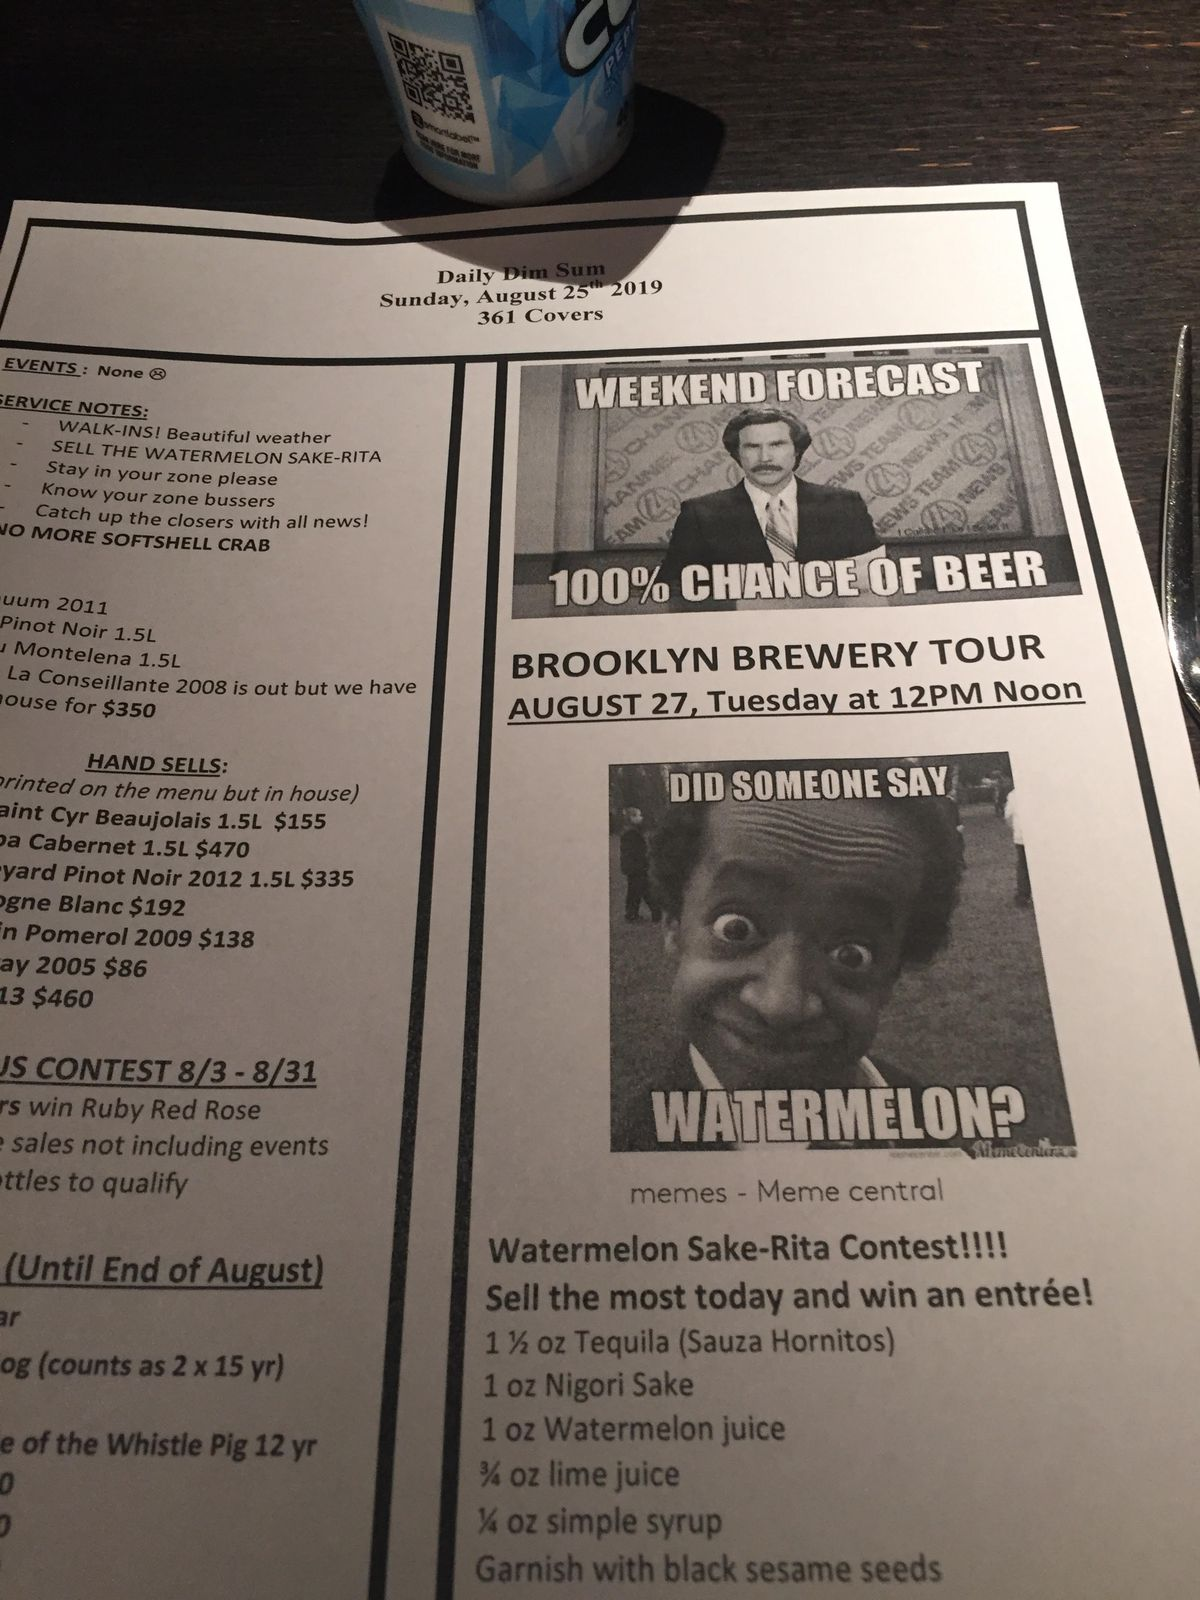 A photograph of a meeting sheet from a restaurant with several specials outlined along with two memes